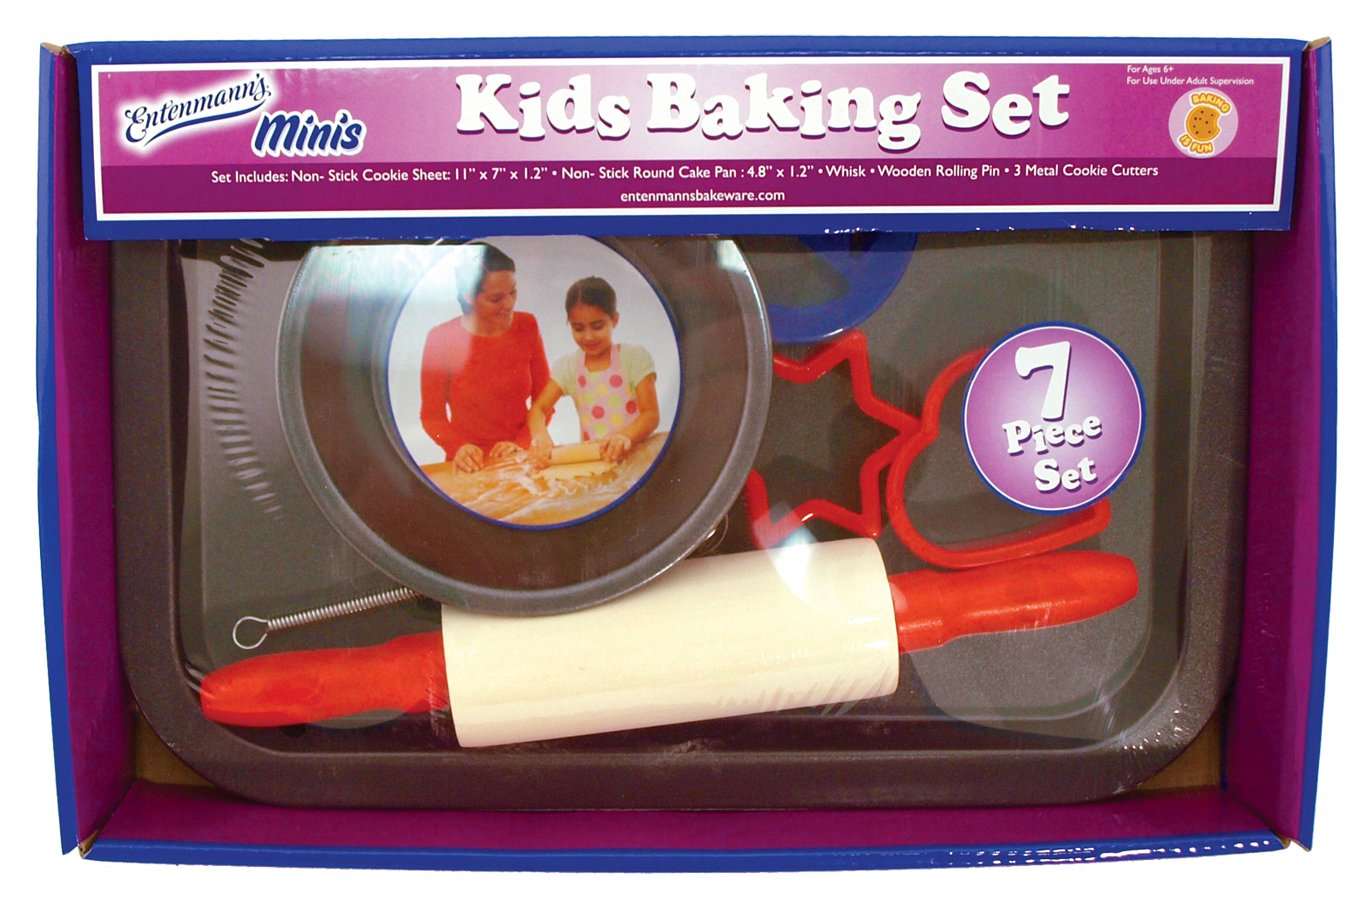 Entemann's ENT39014 7-Piece Kids Baking Set